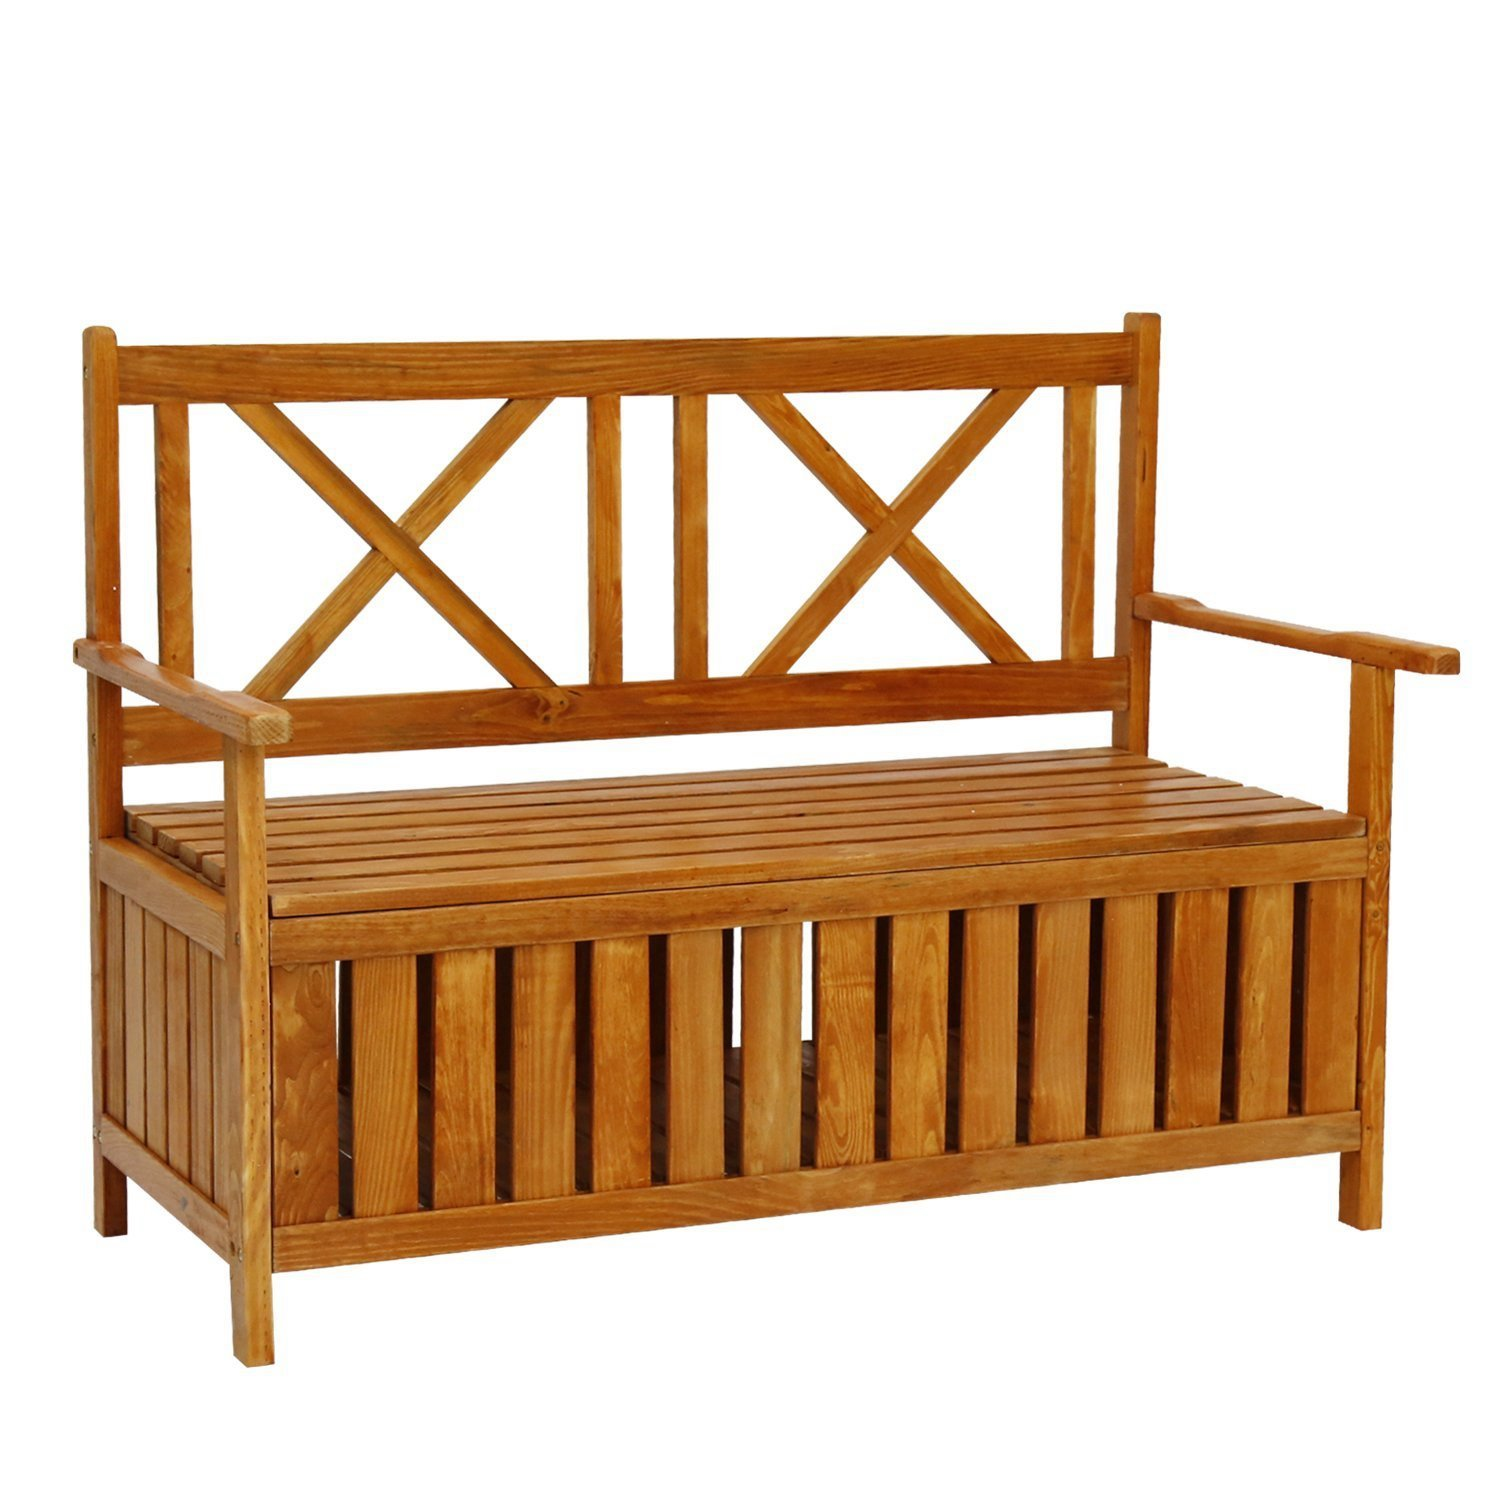 ArmPro Weather Resistance Outdoor Patio Storage Bench Wooden Garden Deck Box